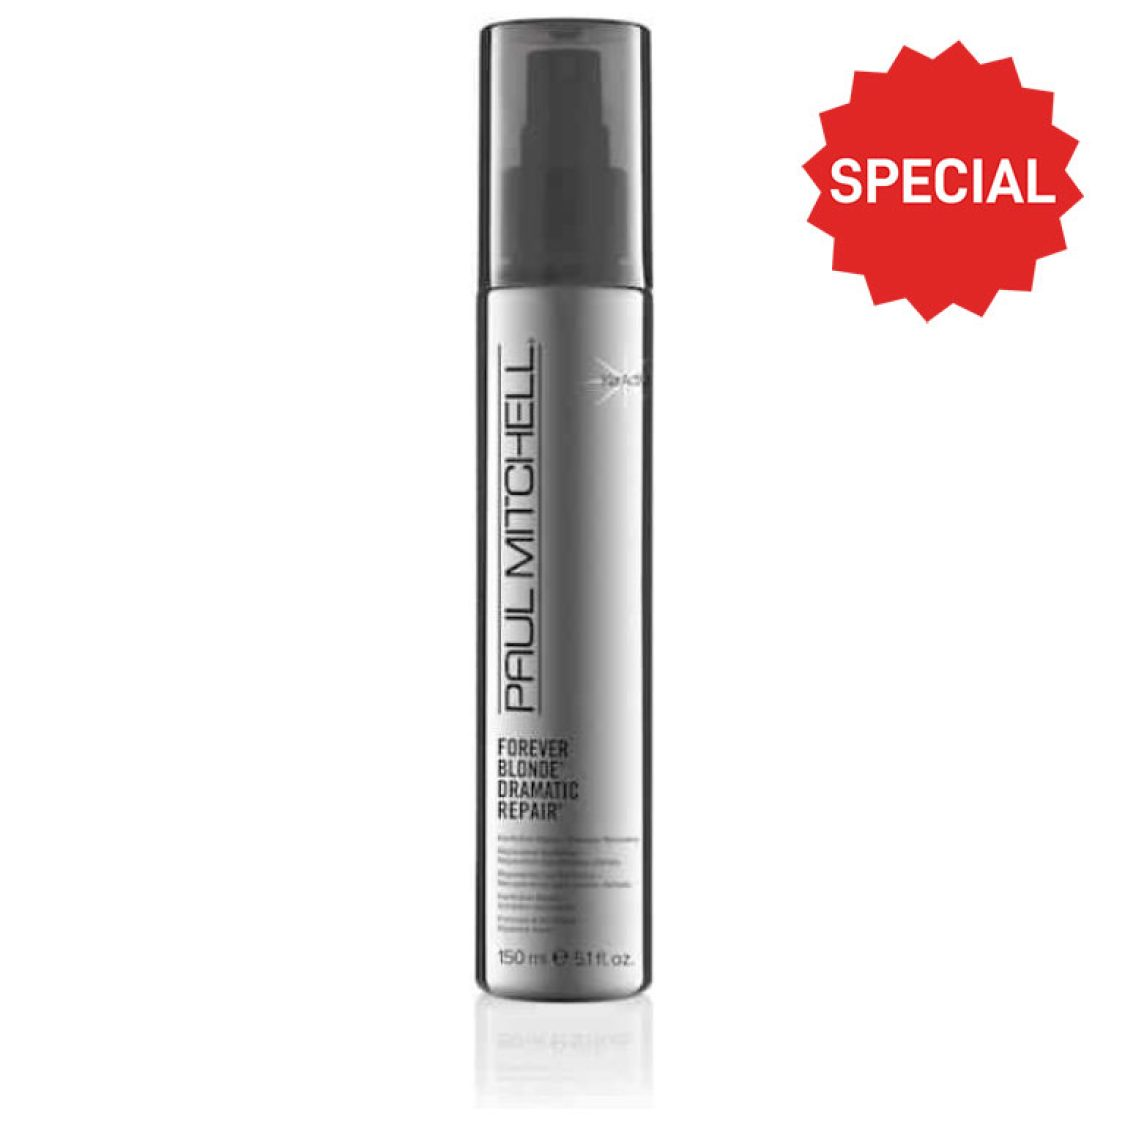 Paul Mitchell - Forever Blonde - Dramatic Repair 150ml